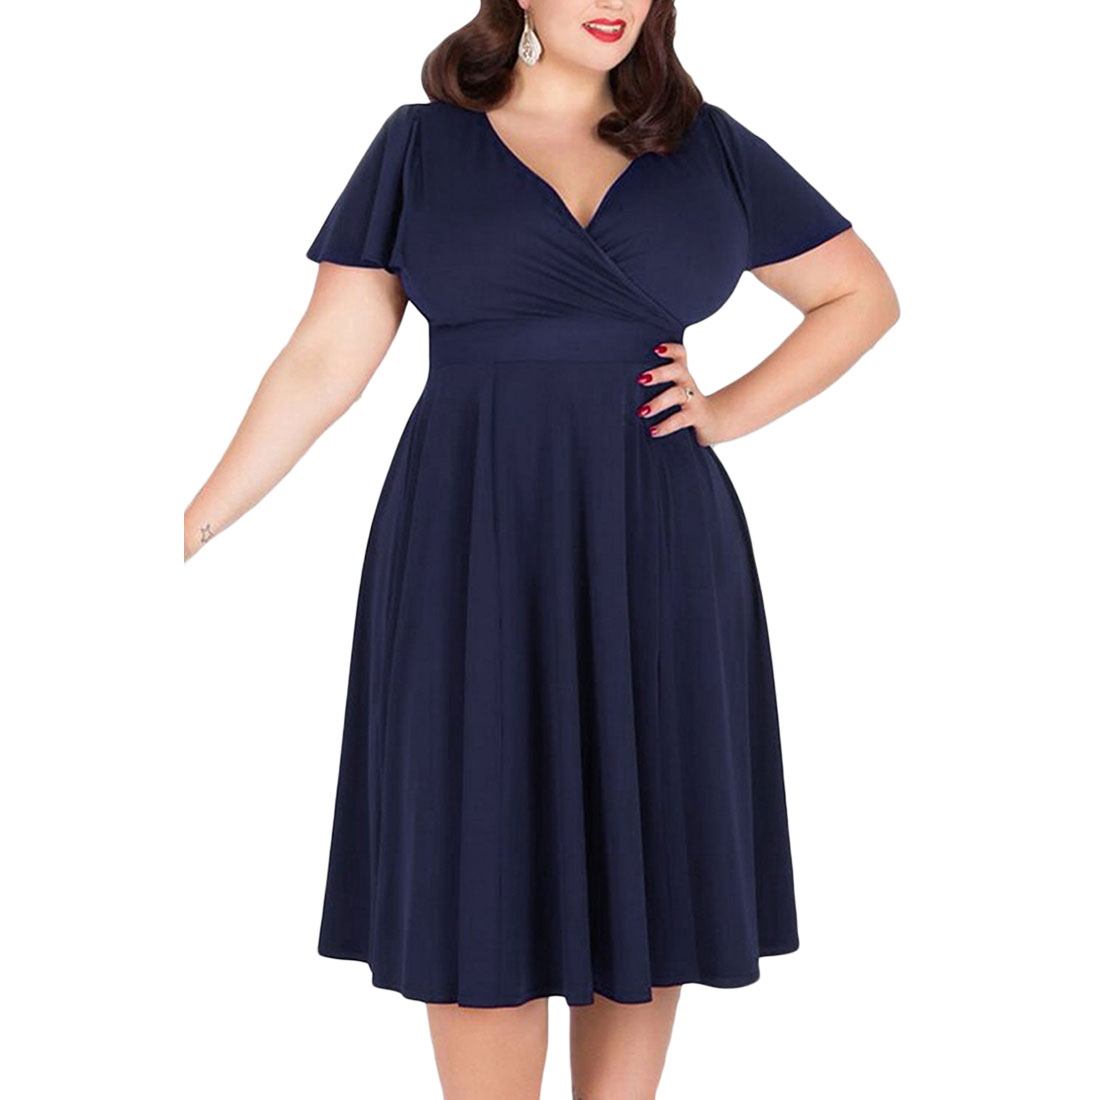 Top Sell Womens Solid Short Sleeve V-neck Stretchy Casual Midi Plus Size Dress